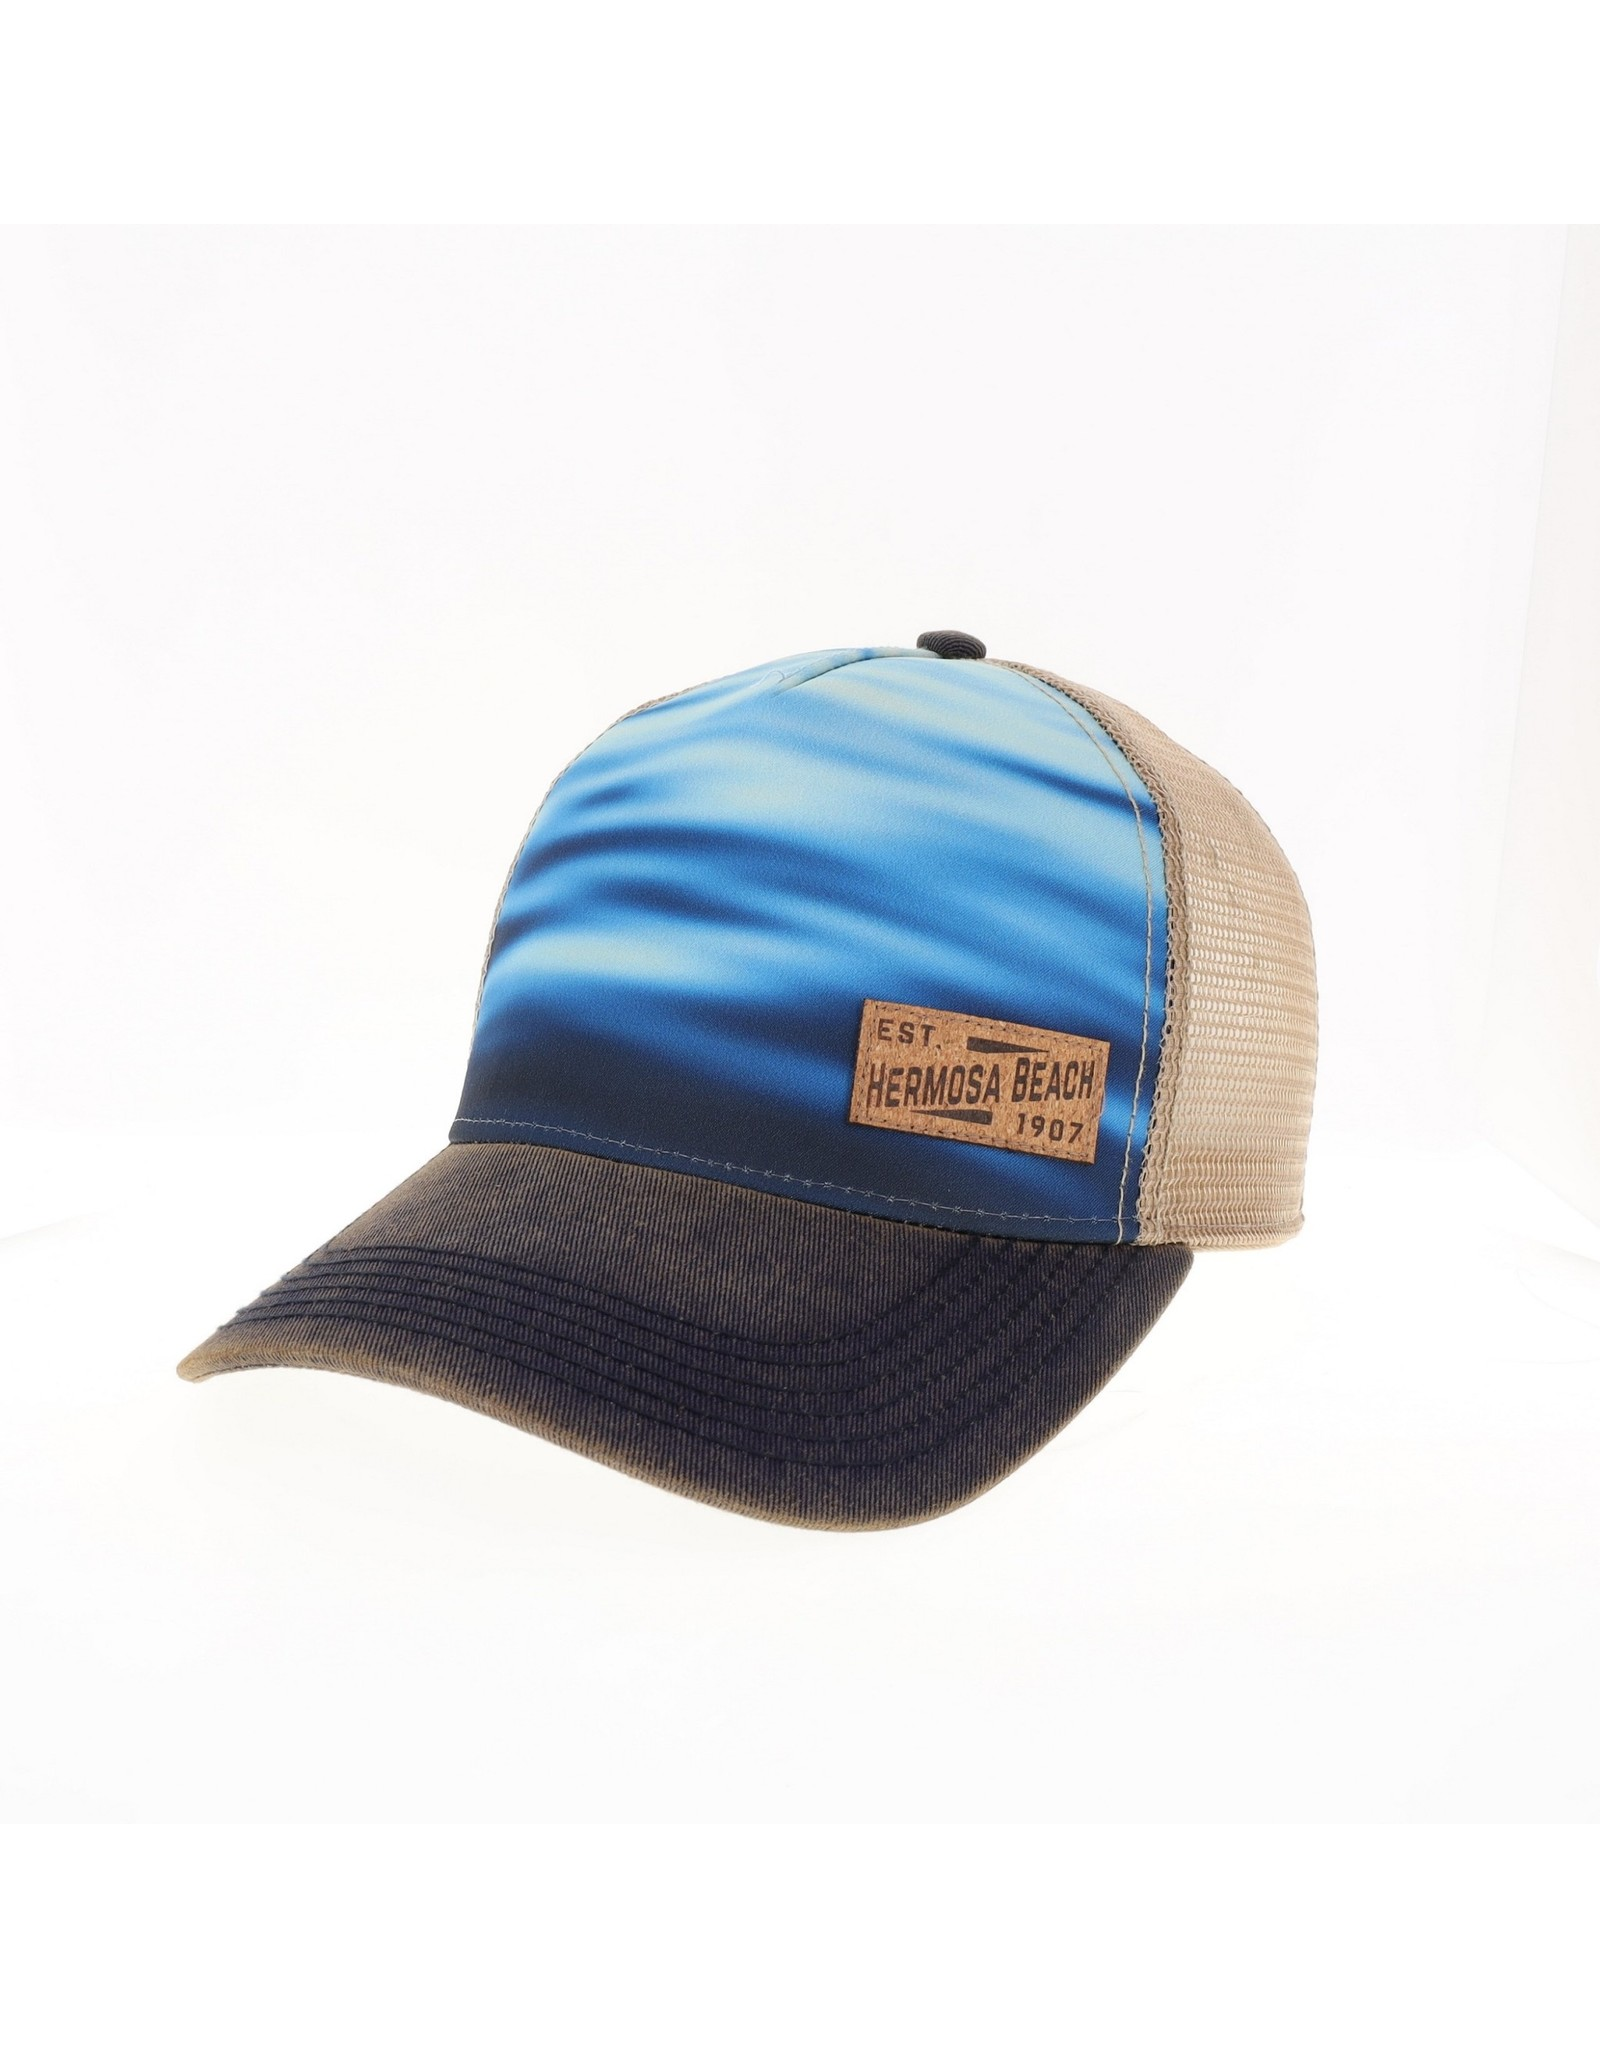 L2 LEAGUE LEGACY #A12.1 LGCY HB OFAS TRUCKER CALM WATER